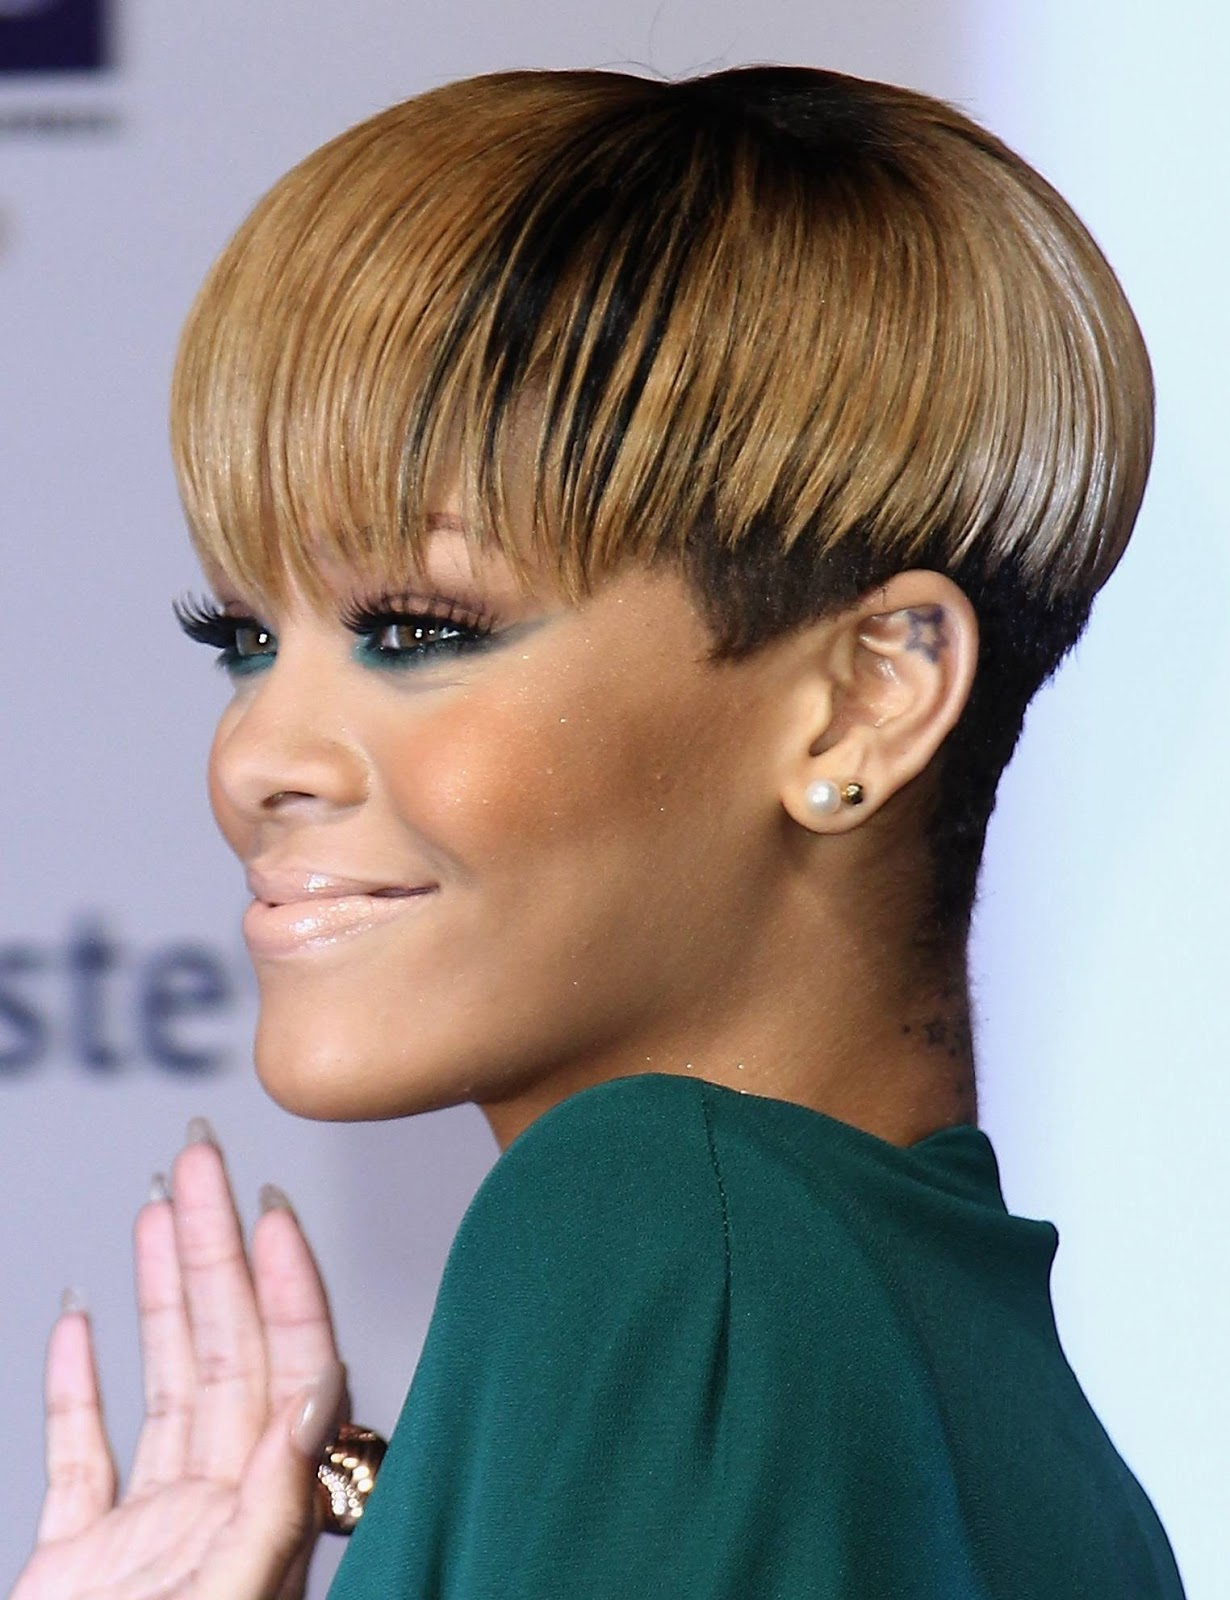 Pics Of Rihanna Short Hairstyles Short Hairstyles For Women And Man